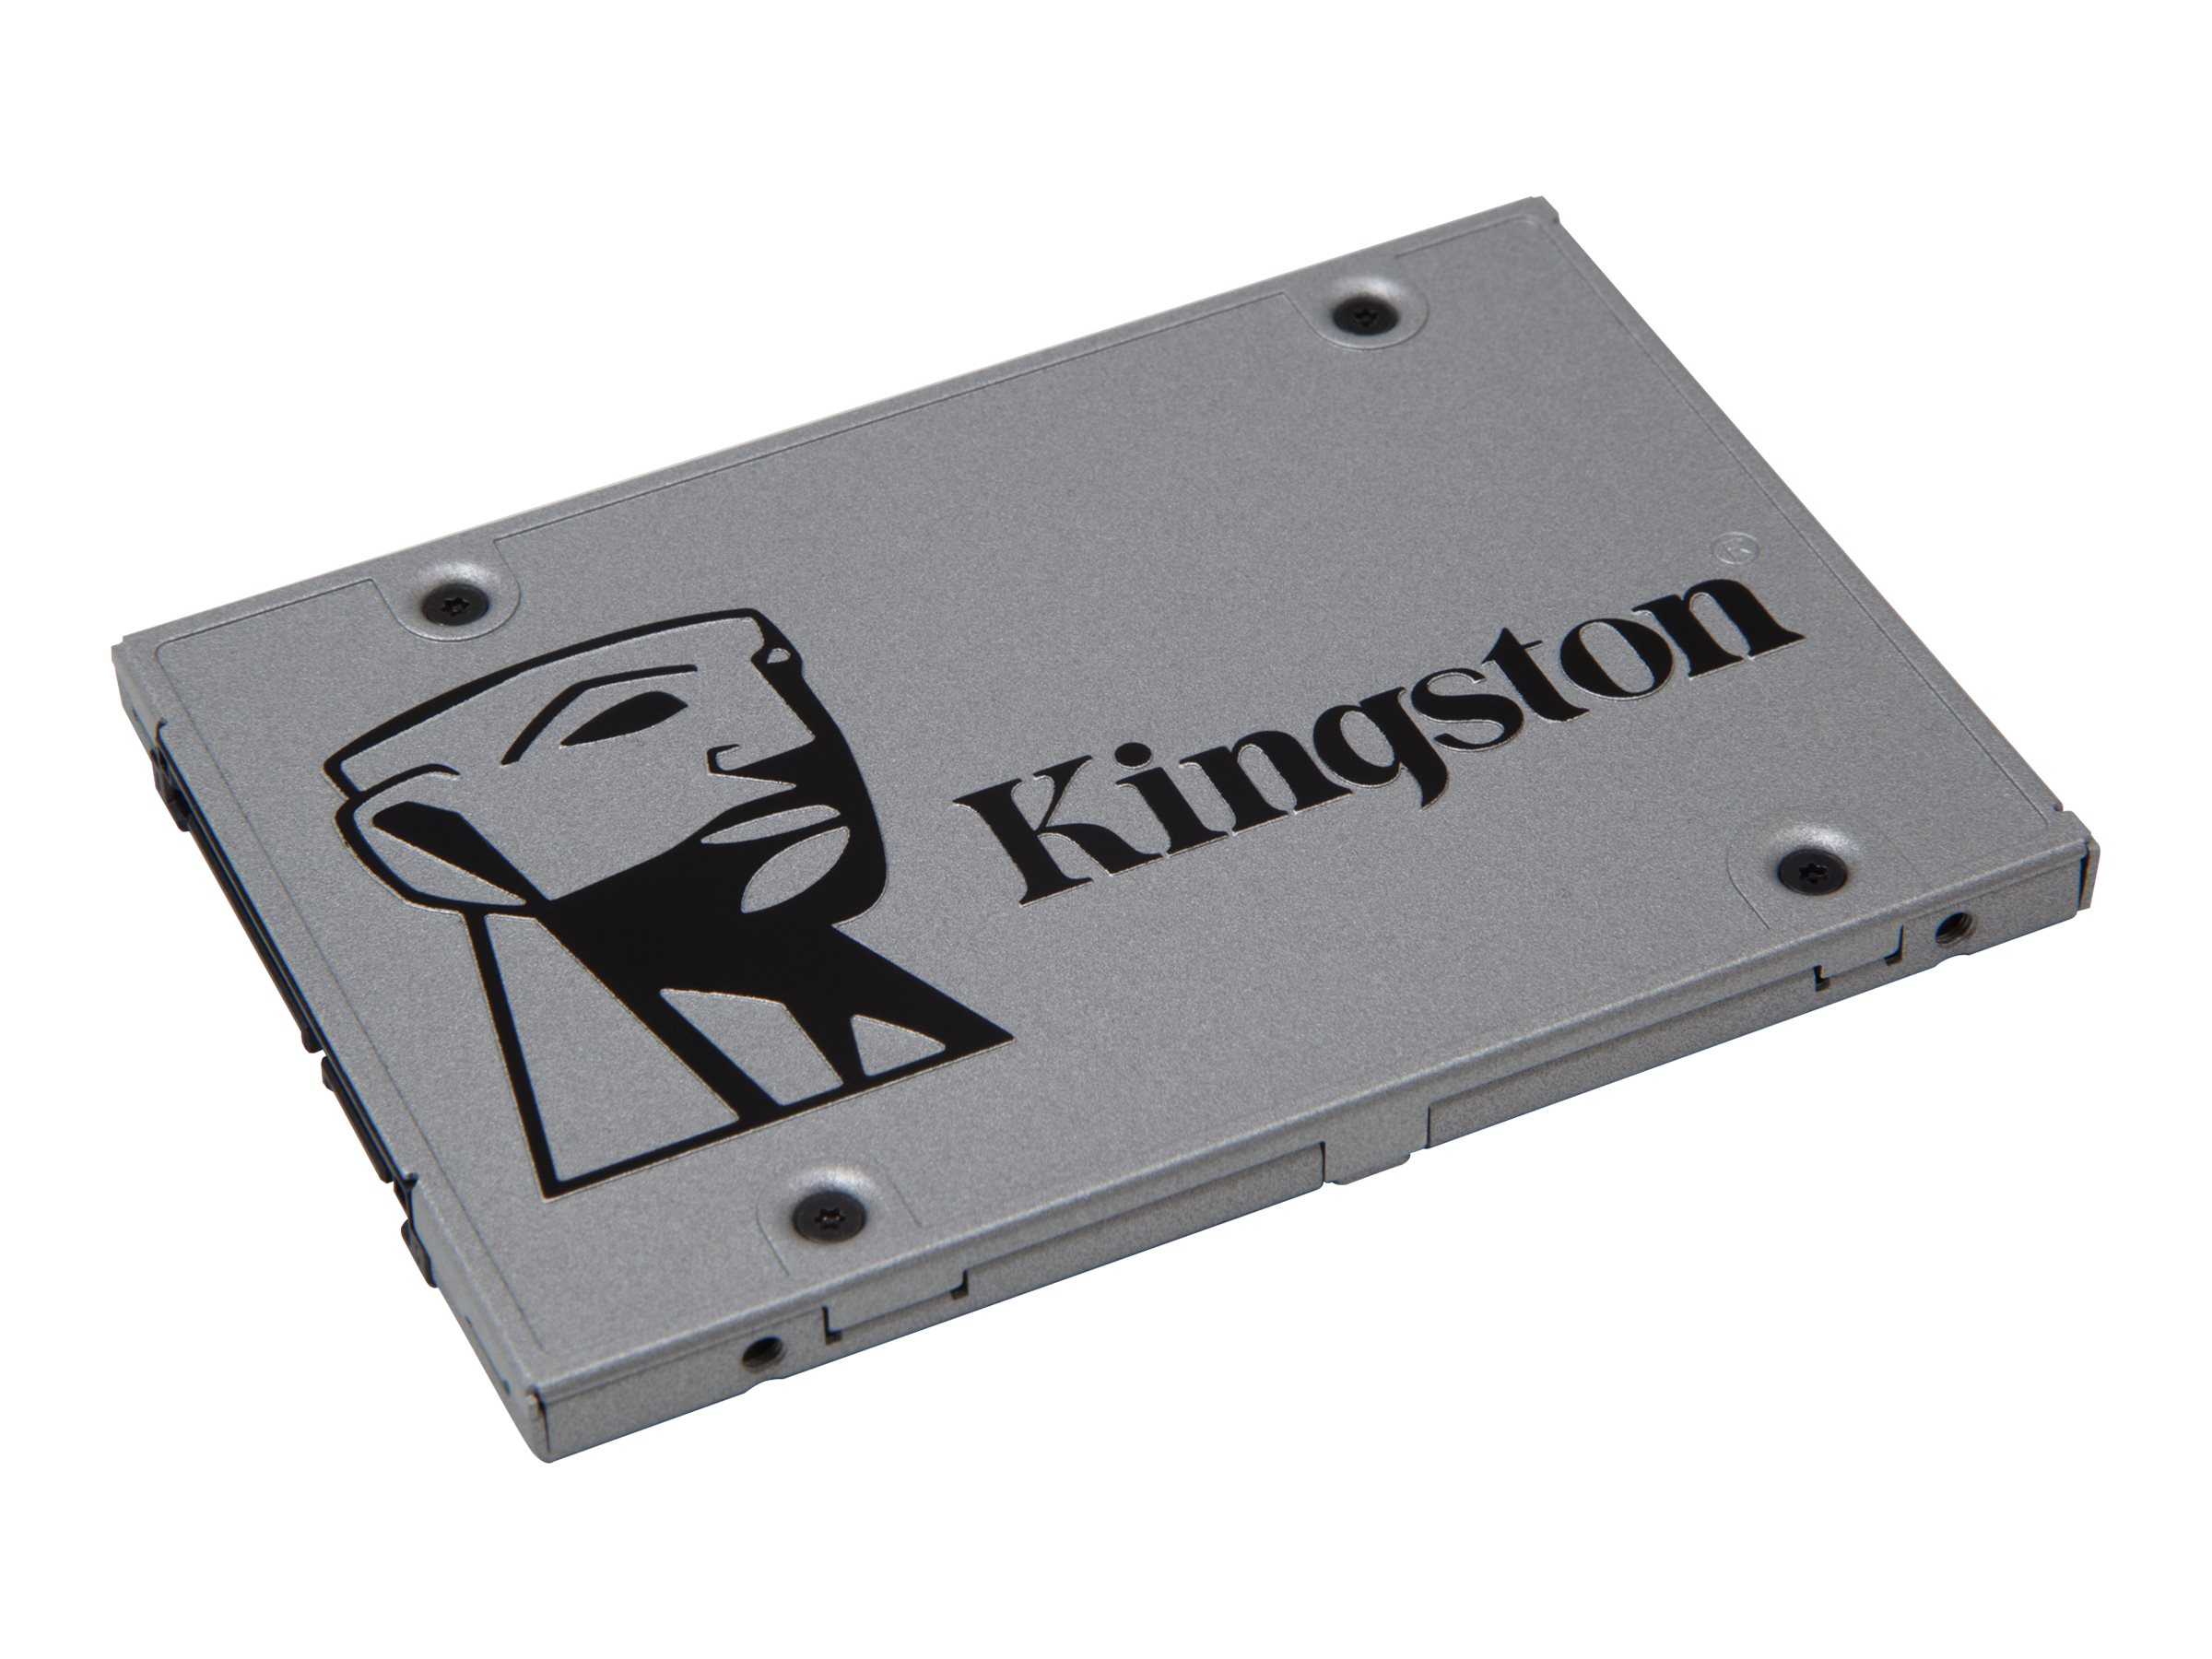 Kingston SUV400S37/120G Image 1